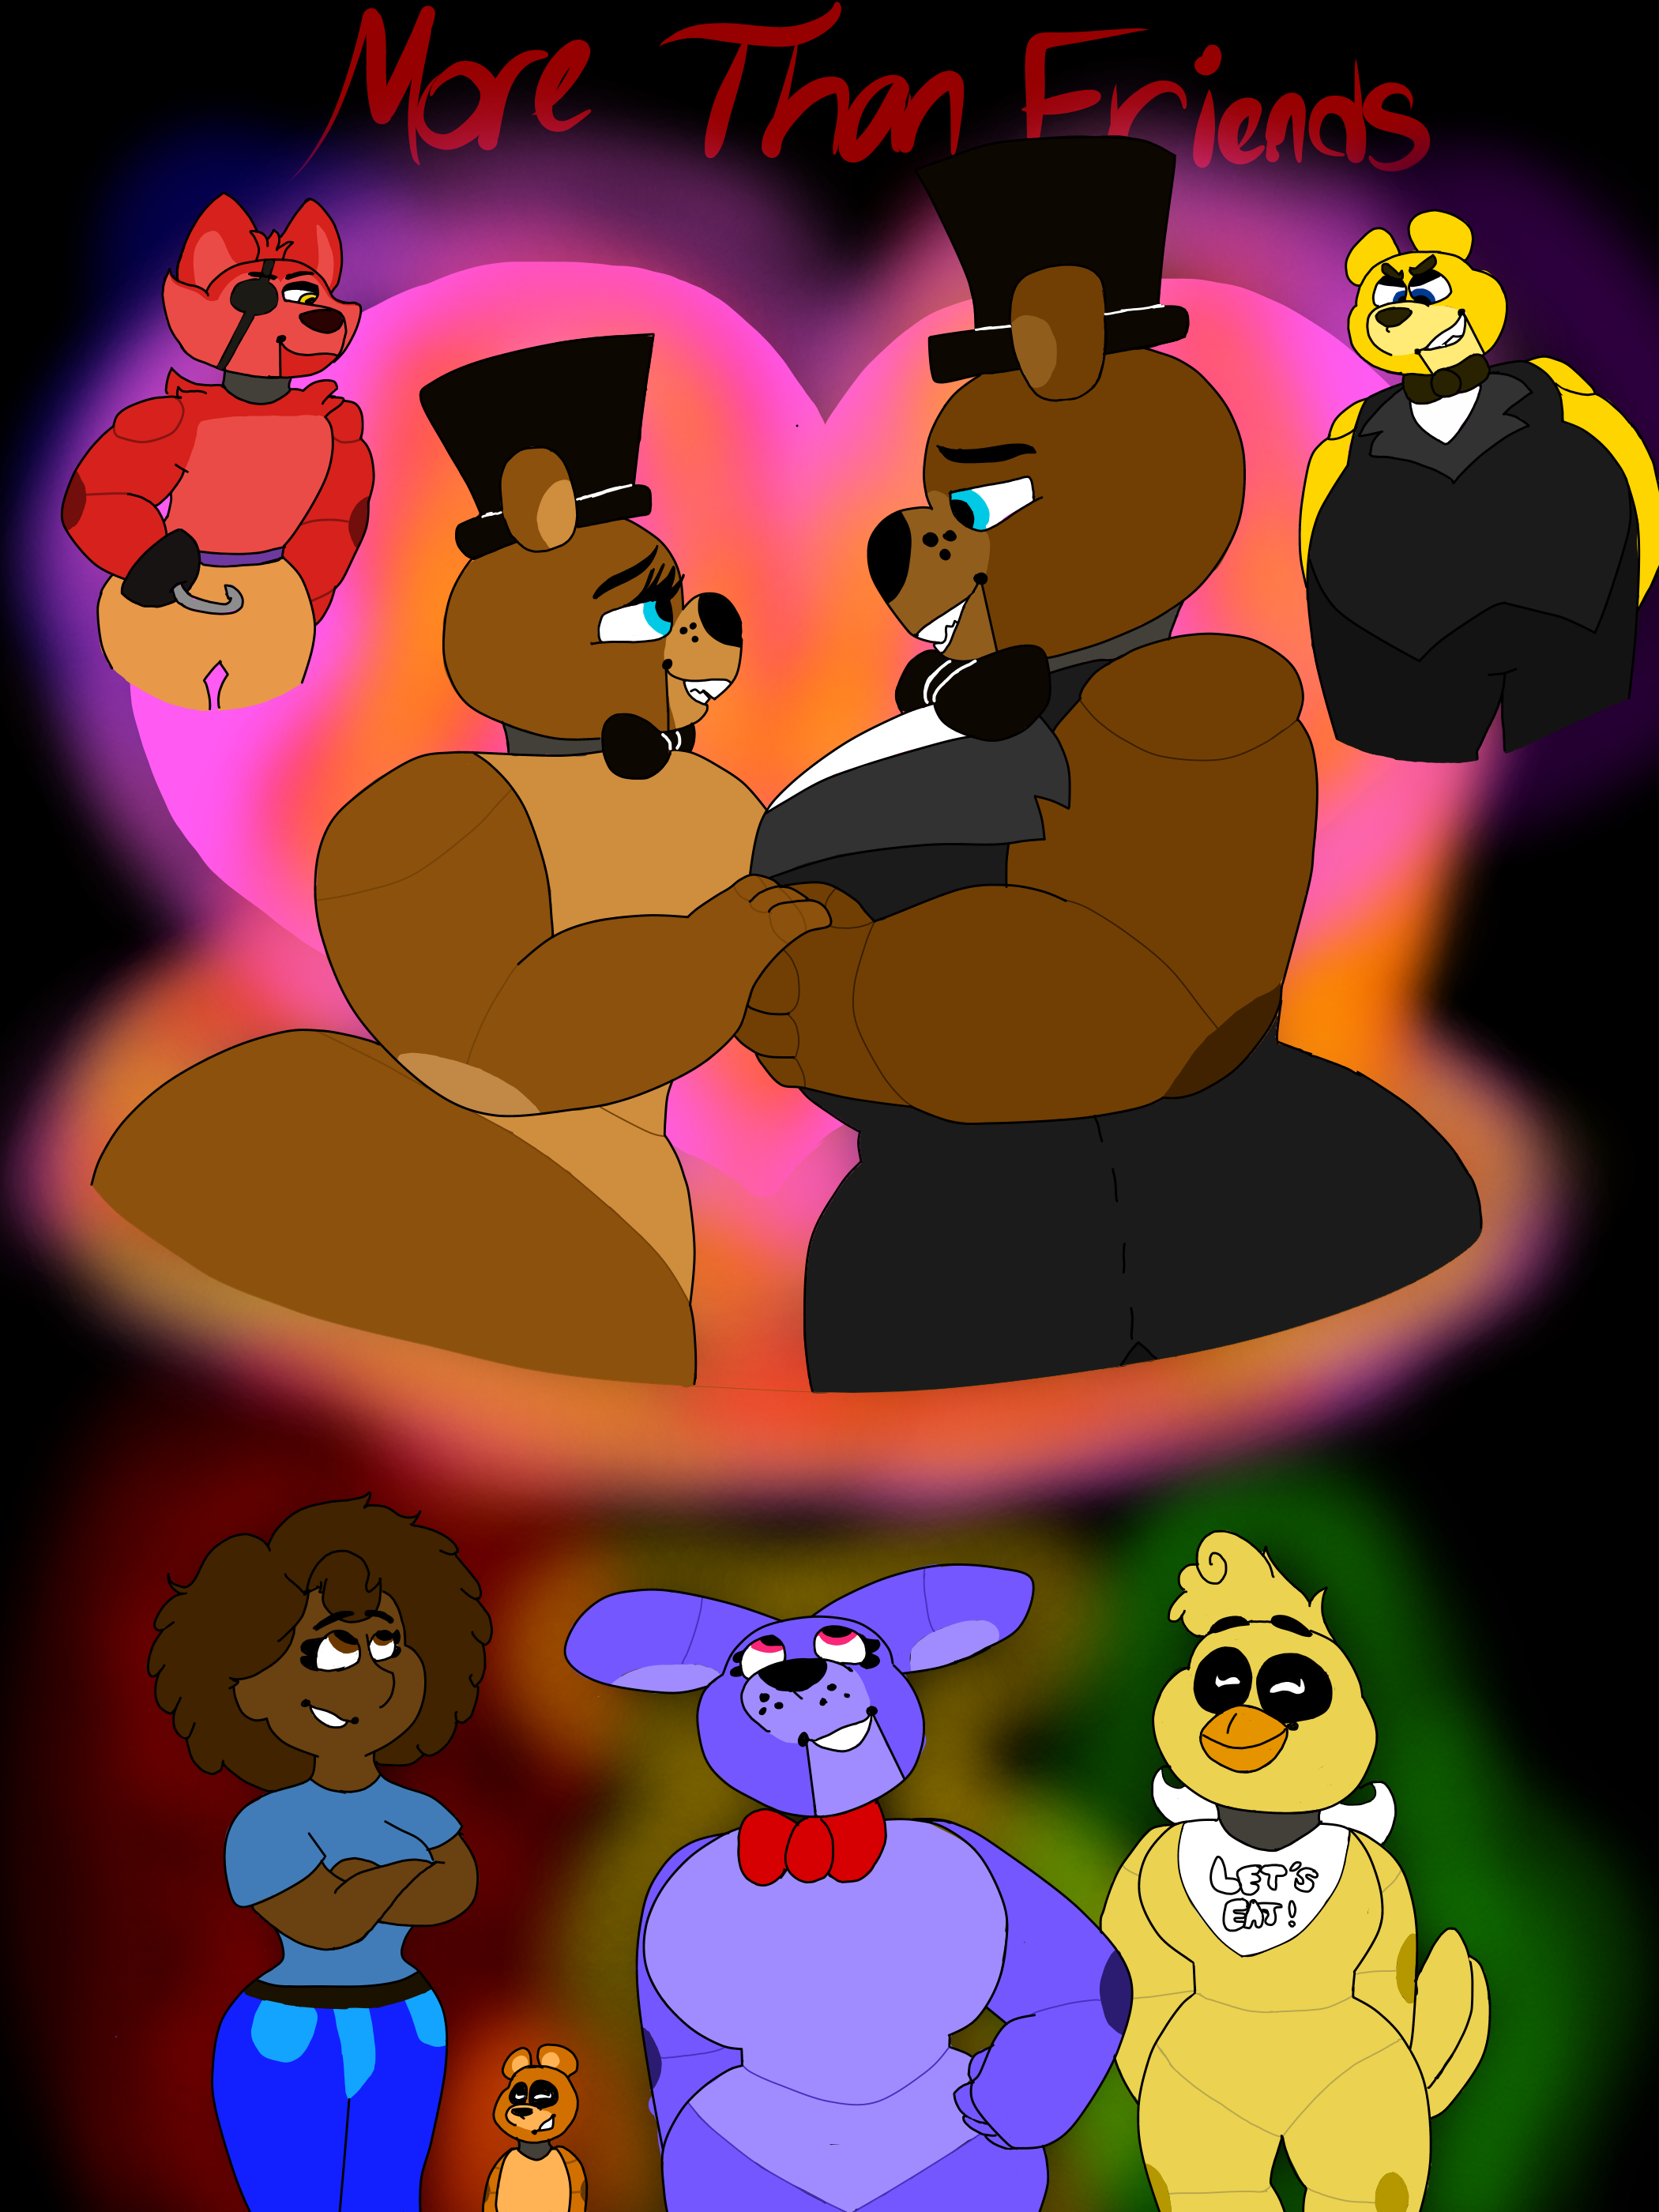 Fnaf Comics En Español a fnaf comic: more than friends fazproductions